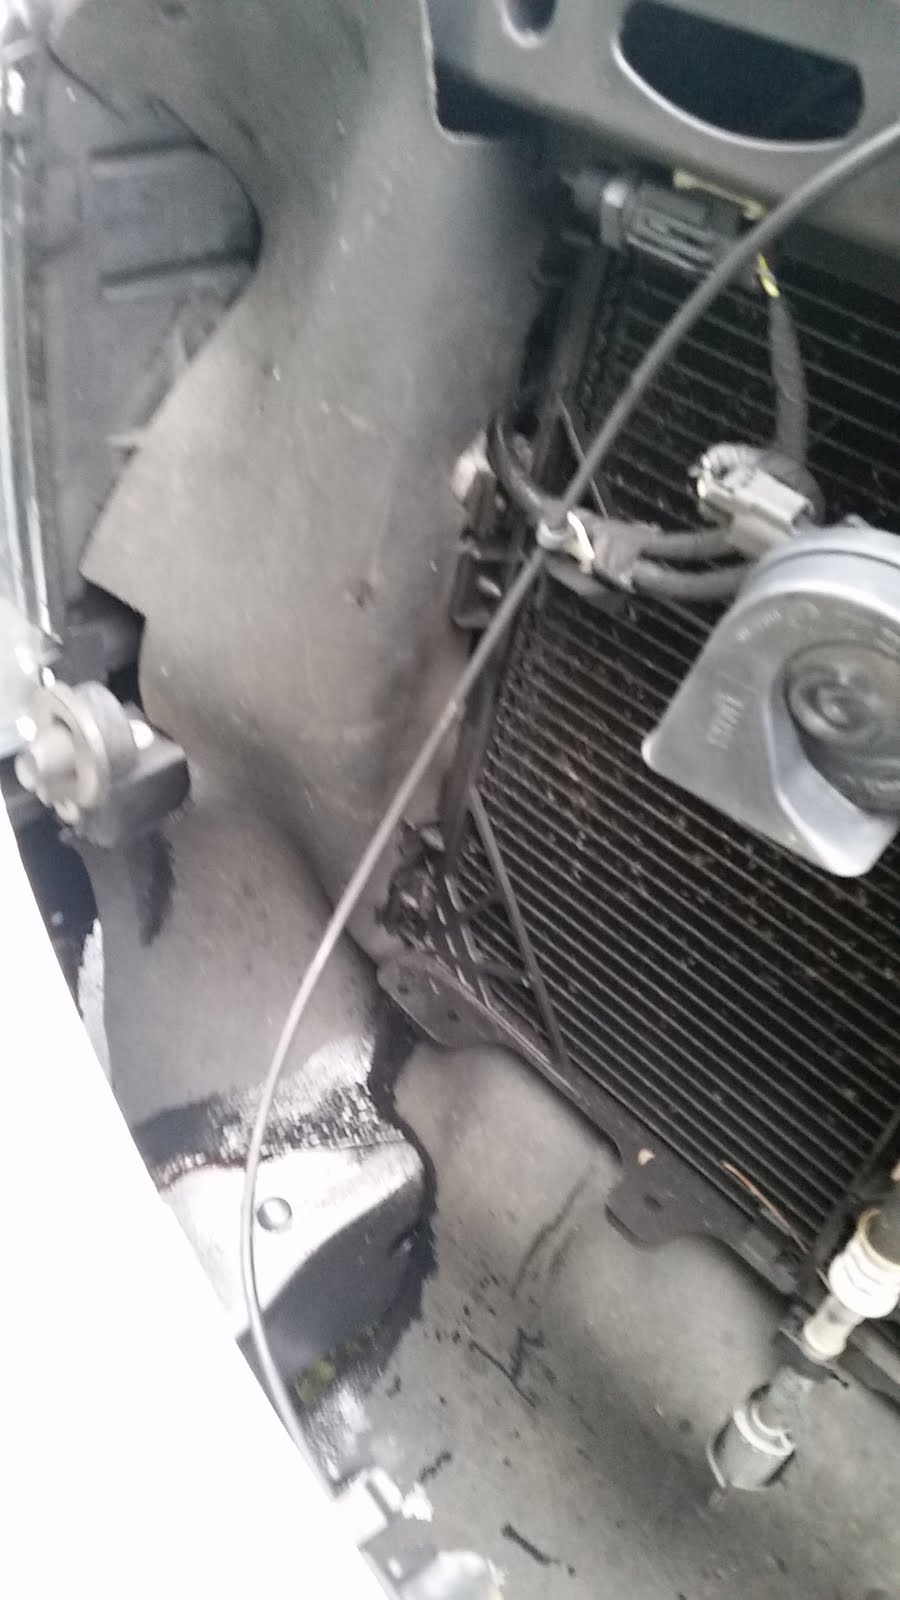 This One Had Me Going Nuts I Started Experiencing The Age Old Wheezing Sound And When I Checked Under The Hood The Condenser Had Splatters Of Oil On It